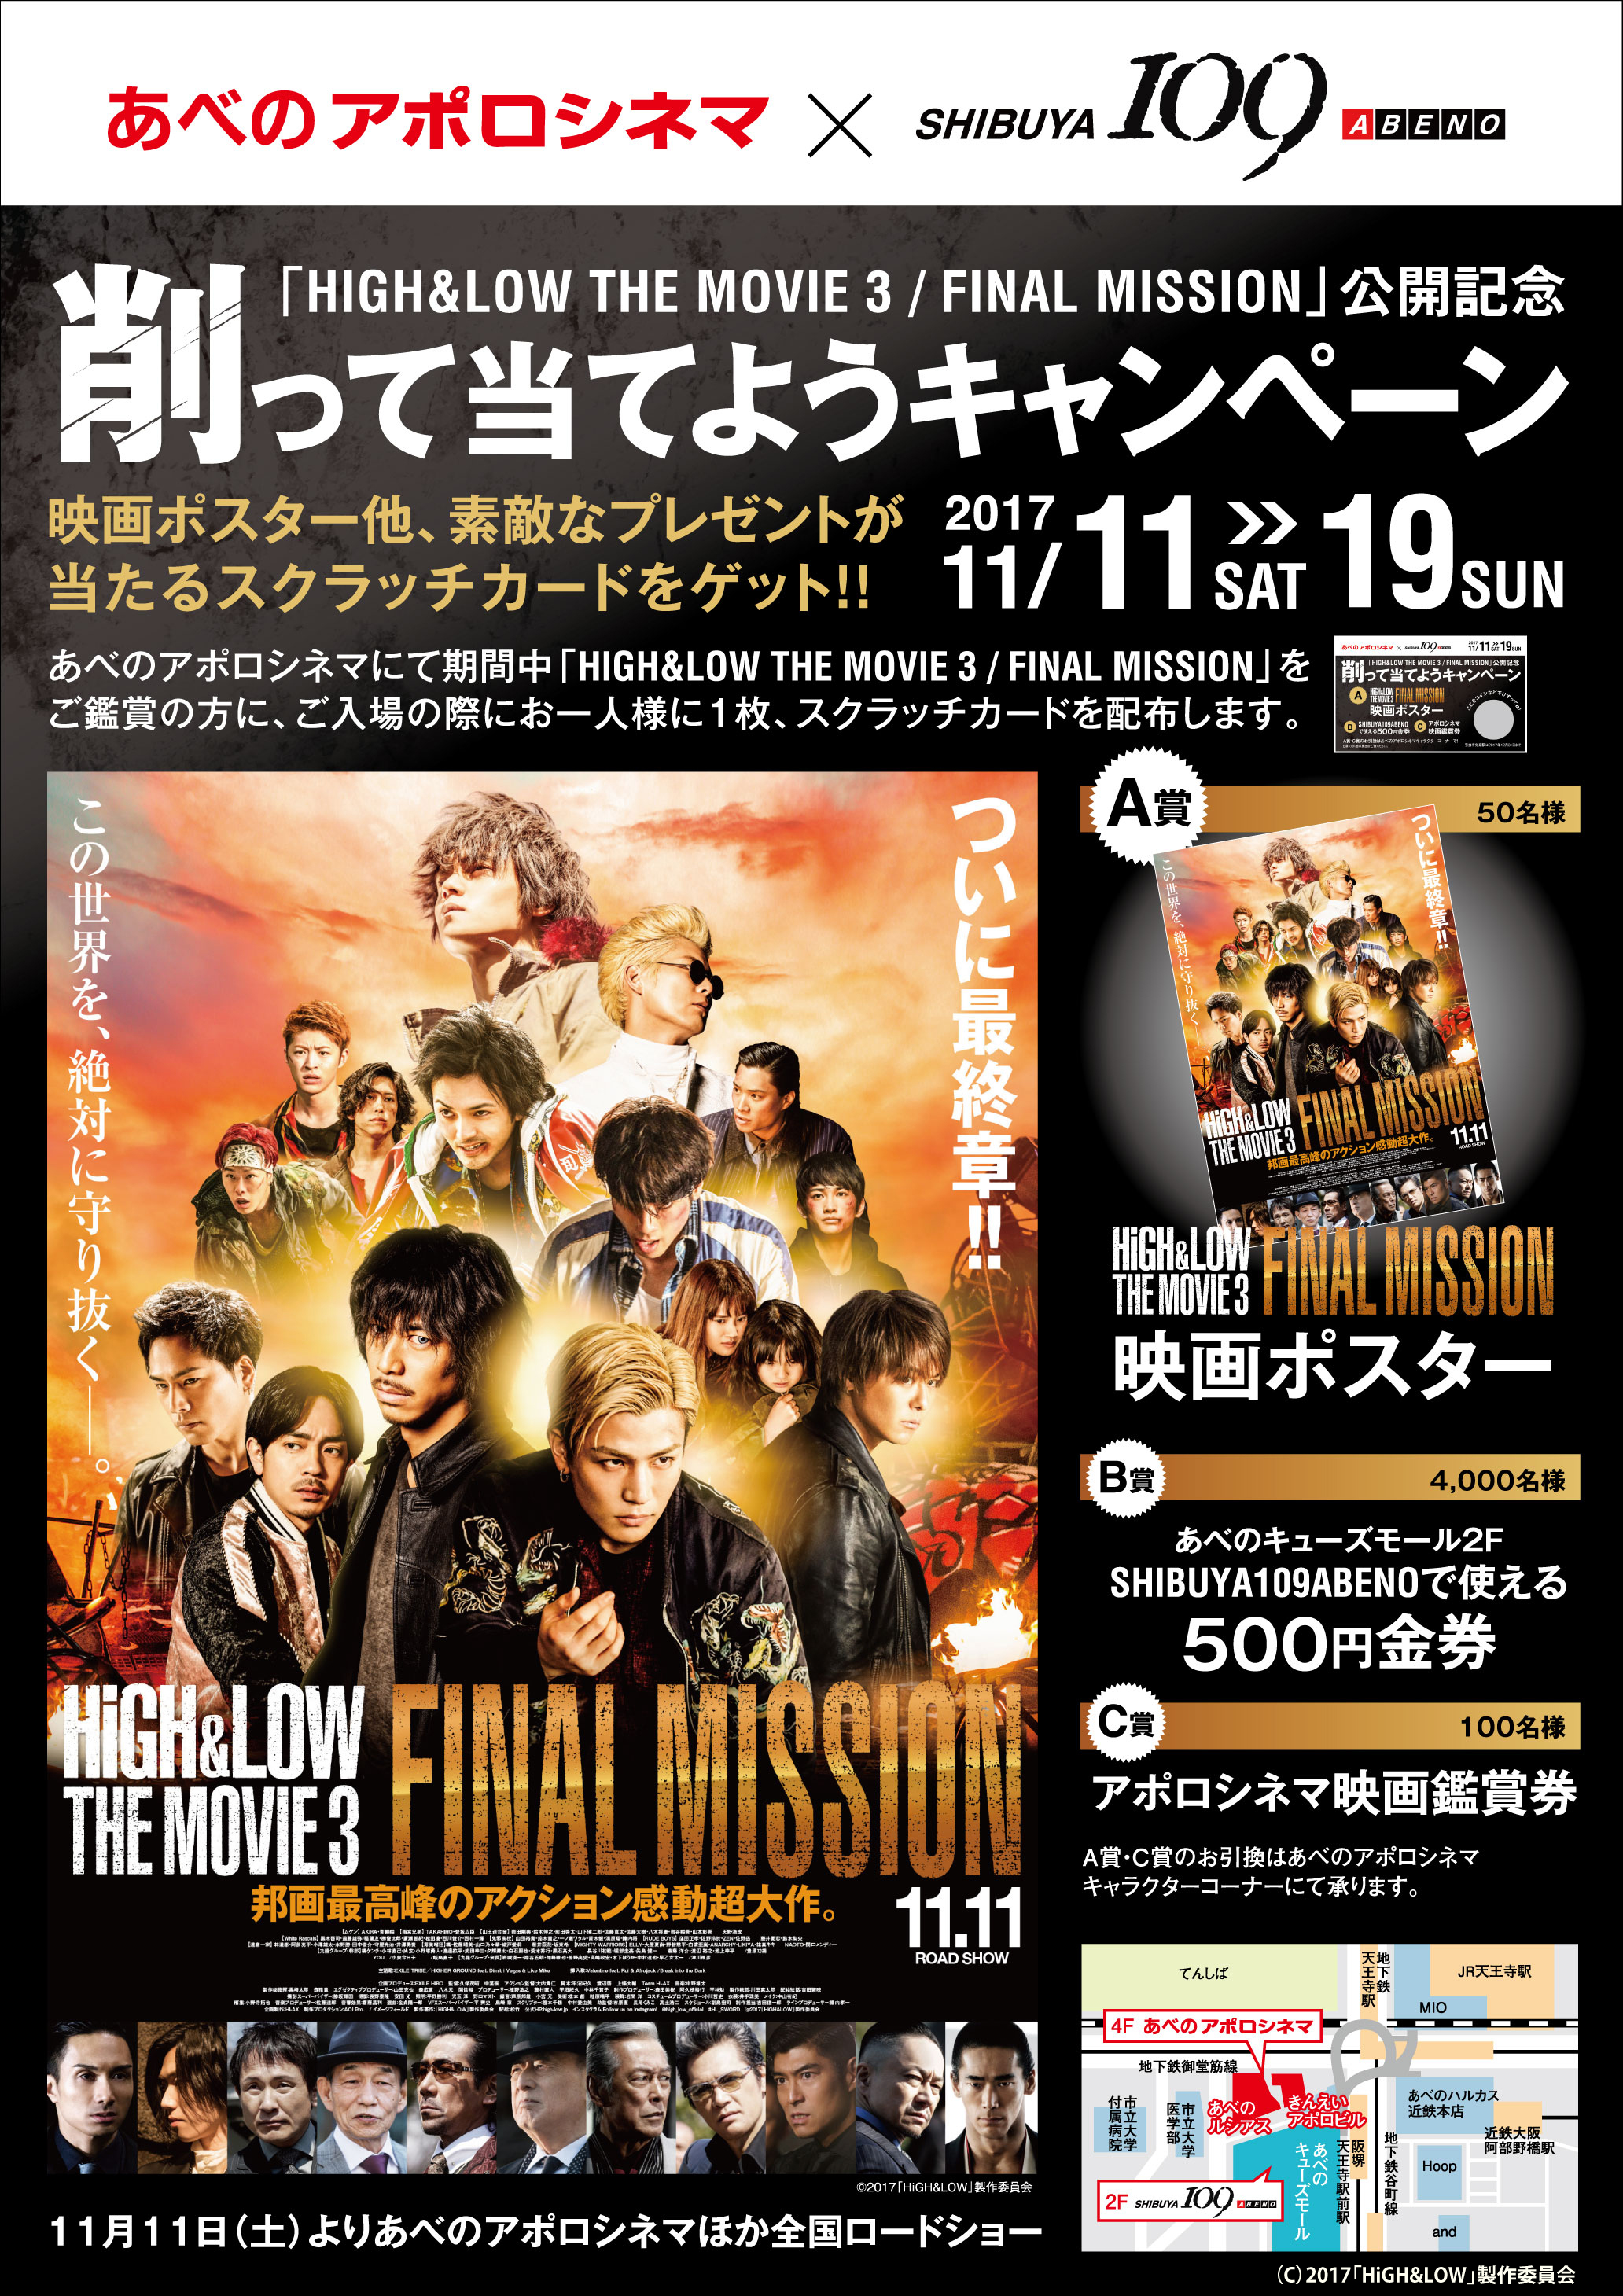 「HiGH&LOW THE MOVIE 3 / FINAL MISSION」公開記念 削って当てようキャンペーン